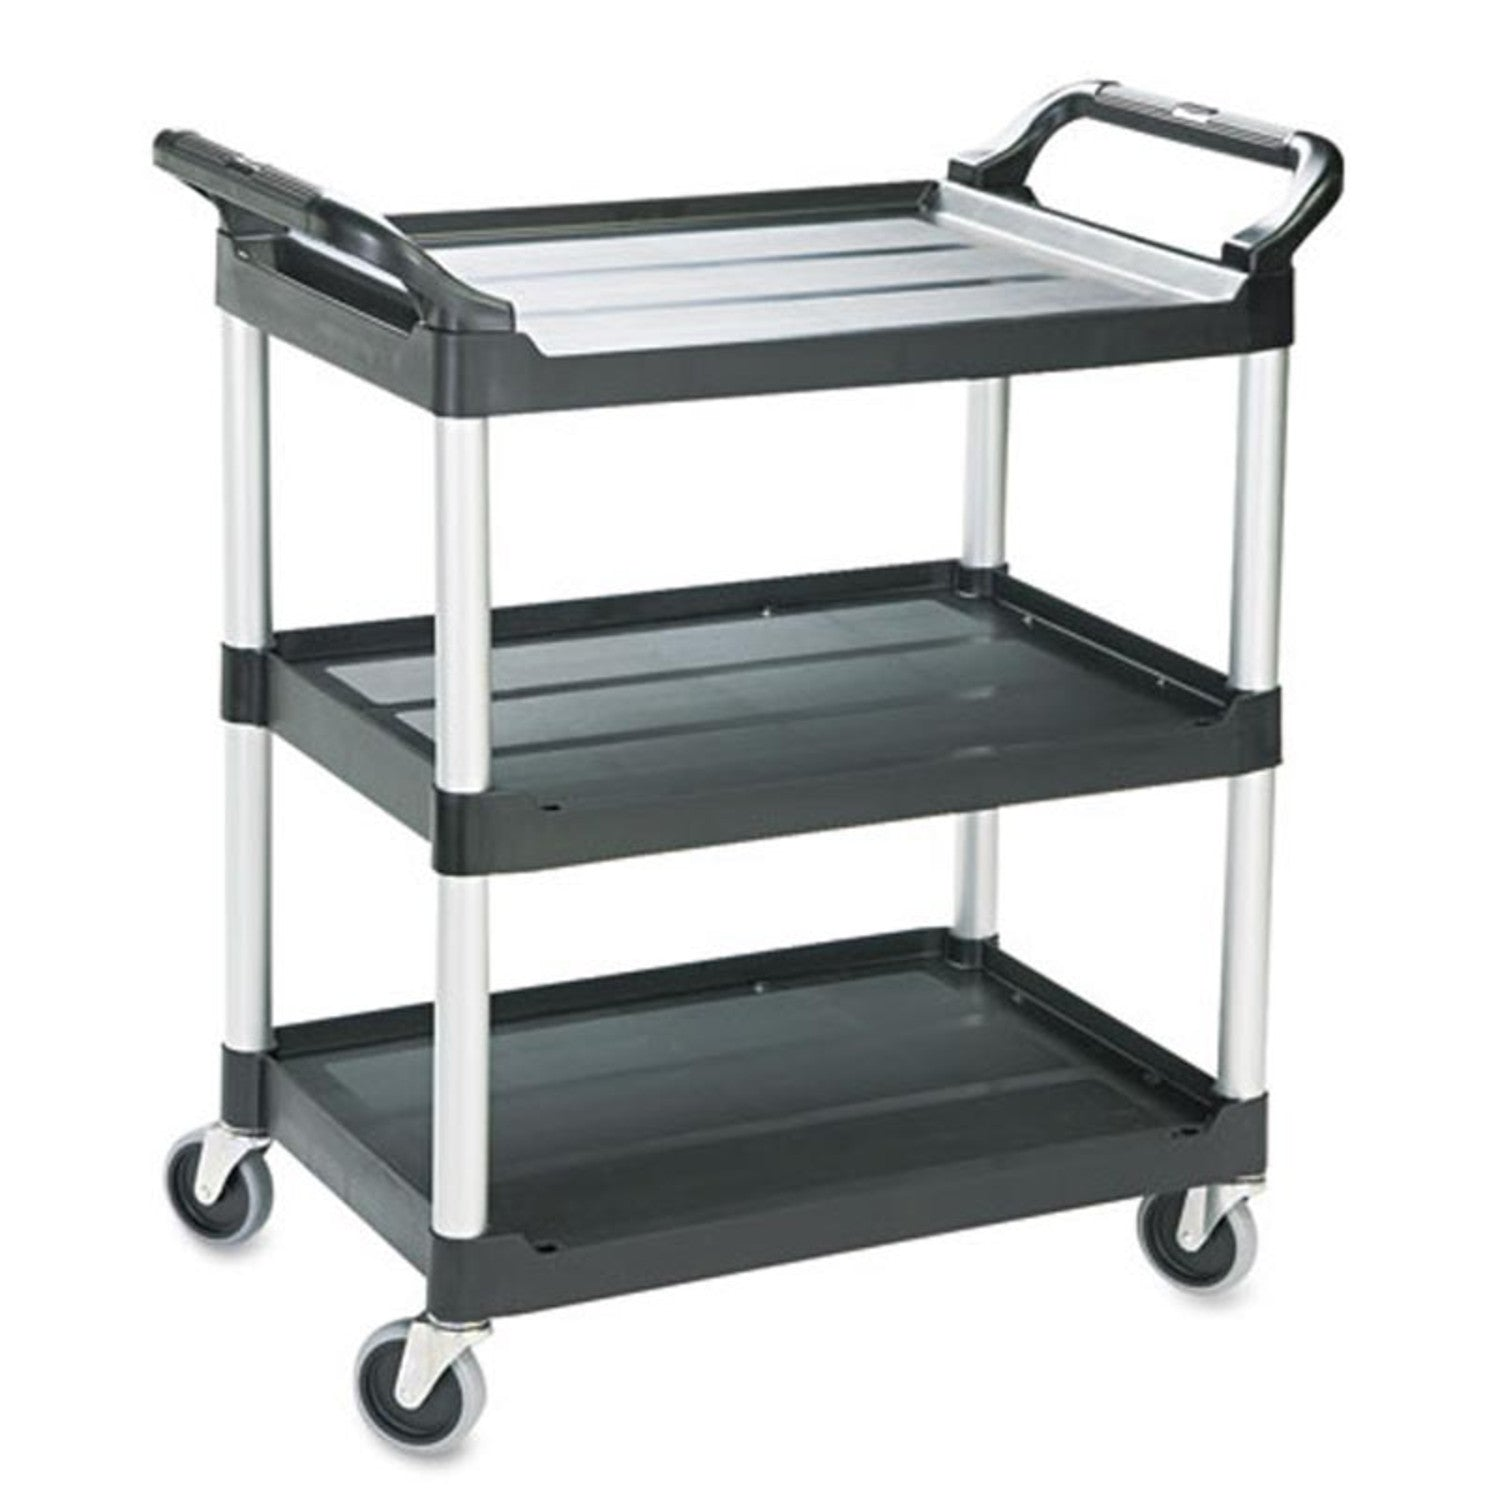 Incroyable 3 Shelf Utility Cart With Dual Handles